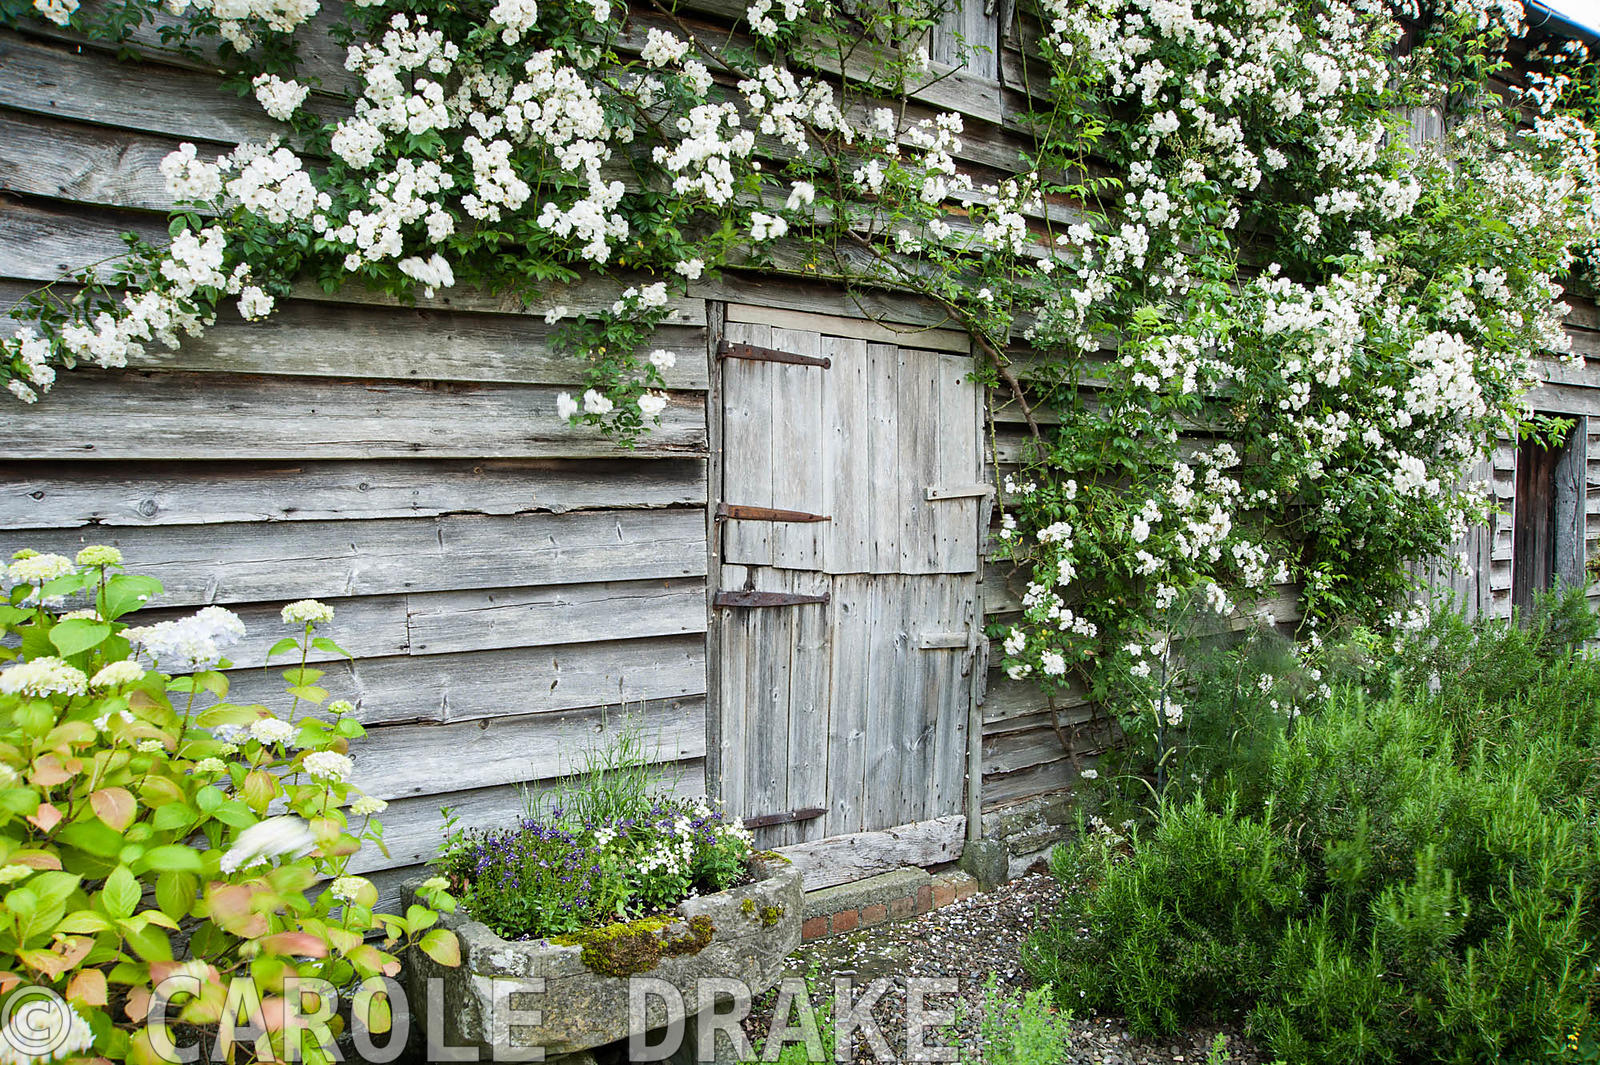 Rosa 'Rambling Rector' trained along a wooden barn with stone trough below. Ashley Farm, Stansbatch, Herefordshire, UK